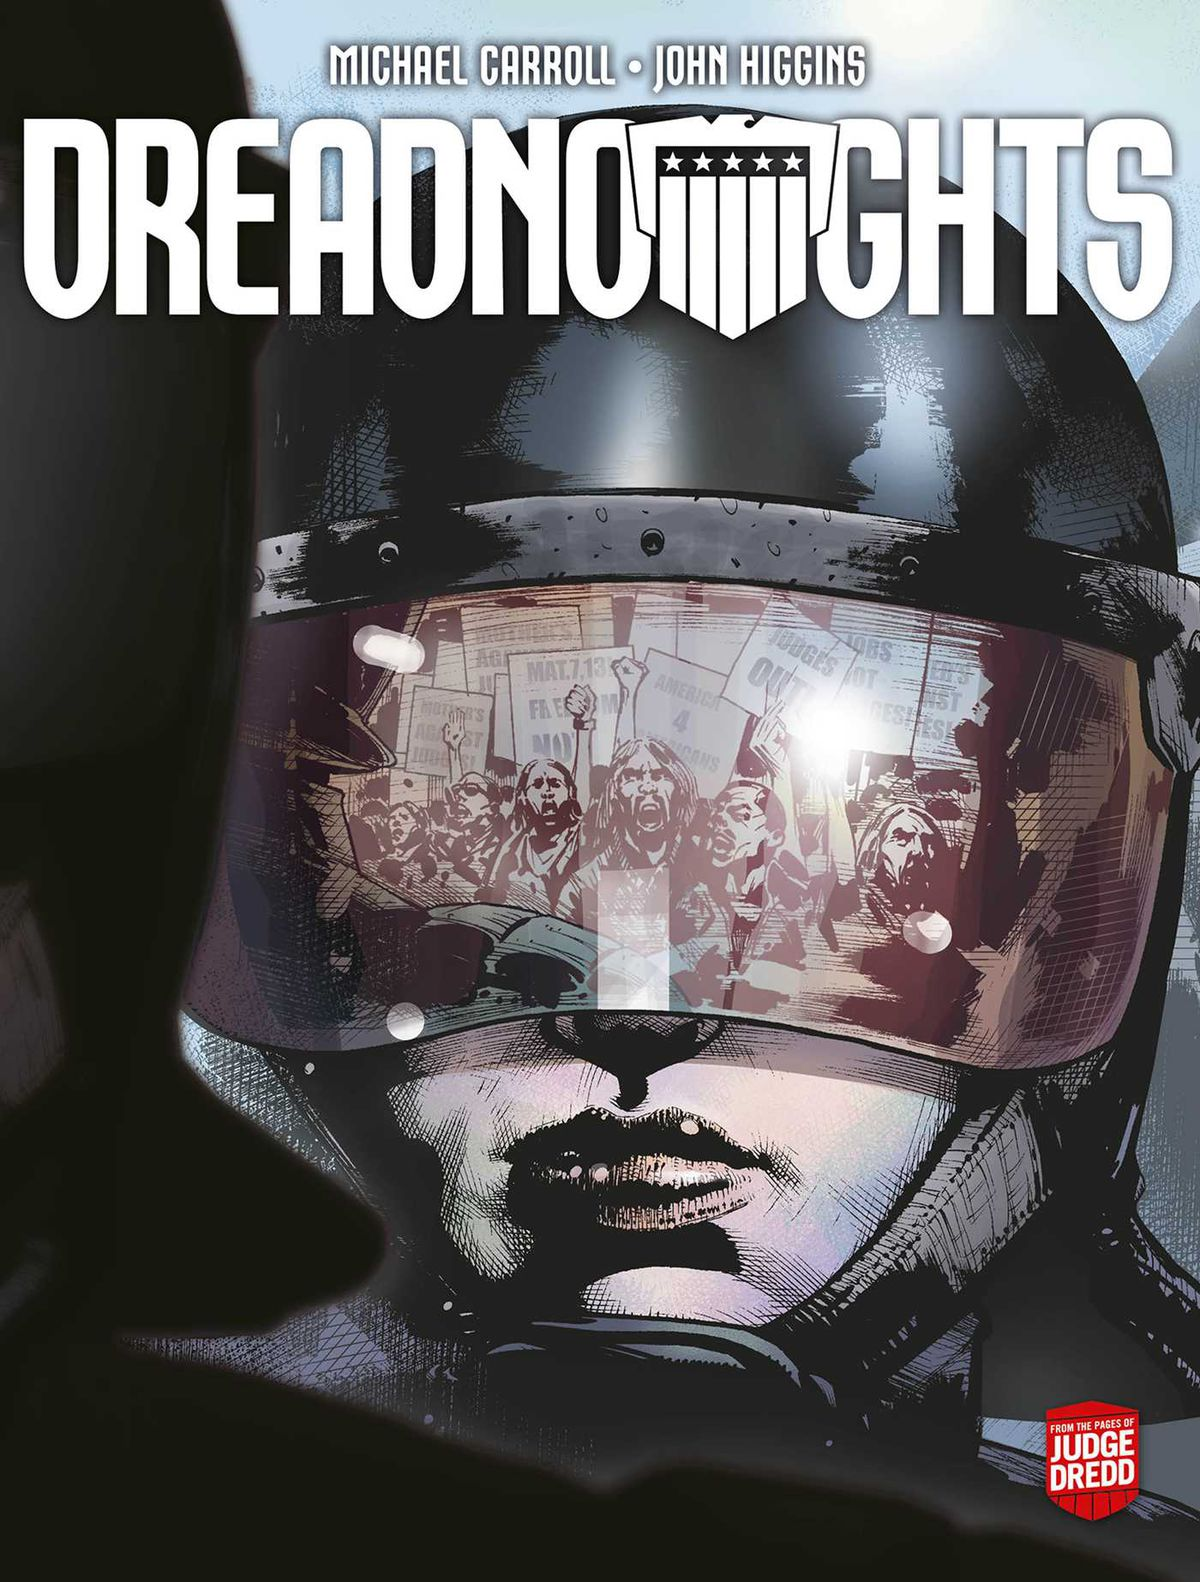 A policewoman in riot gear, her helmet reflecting a crowd of protestors carrying signs on the cover of Dreadnoughts: Breaking Ground (2021).